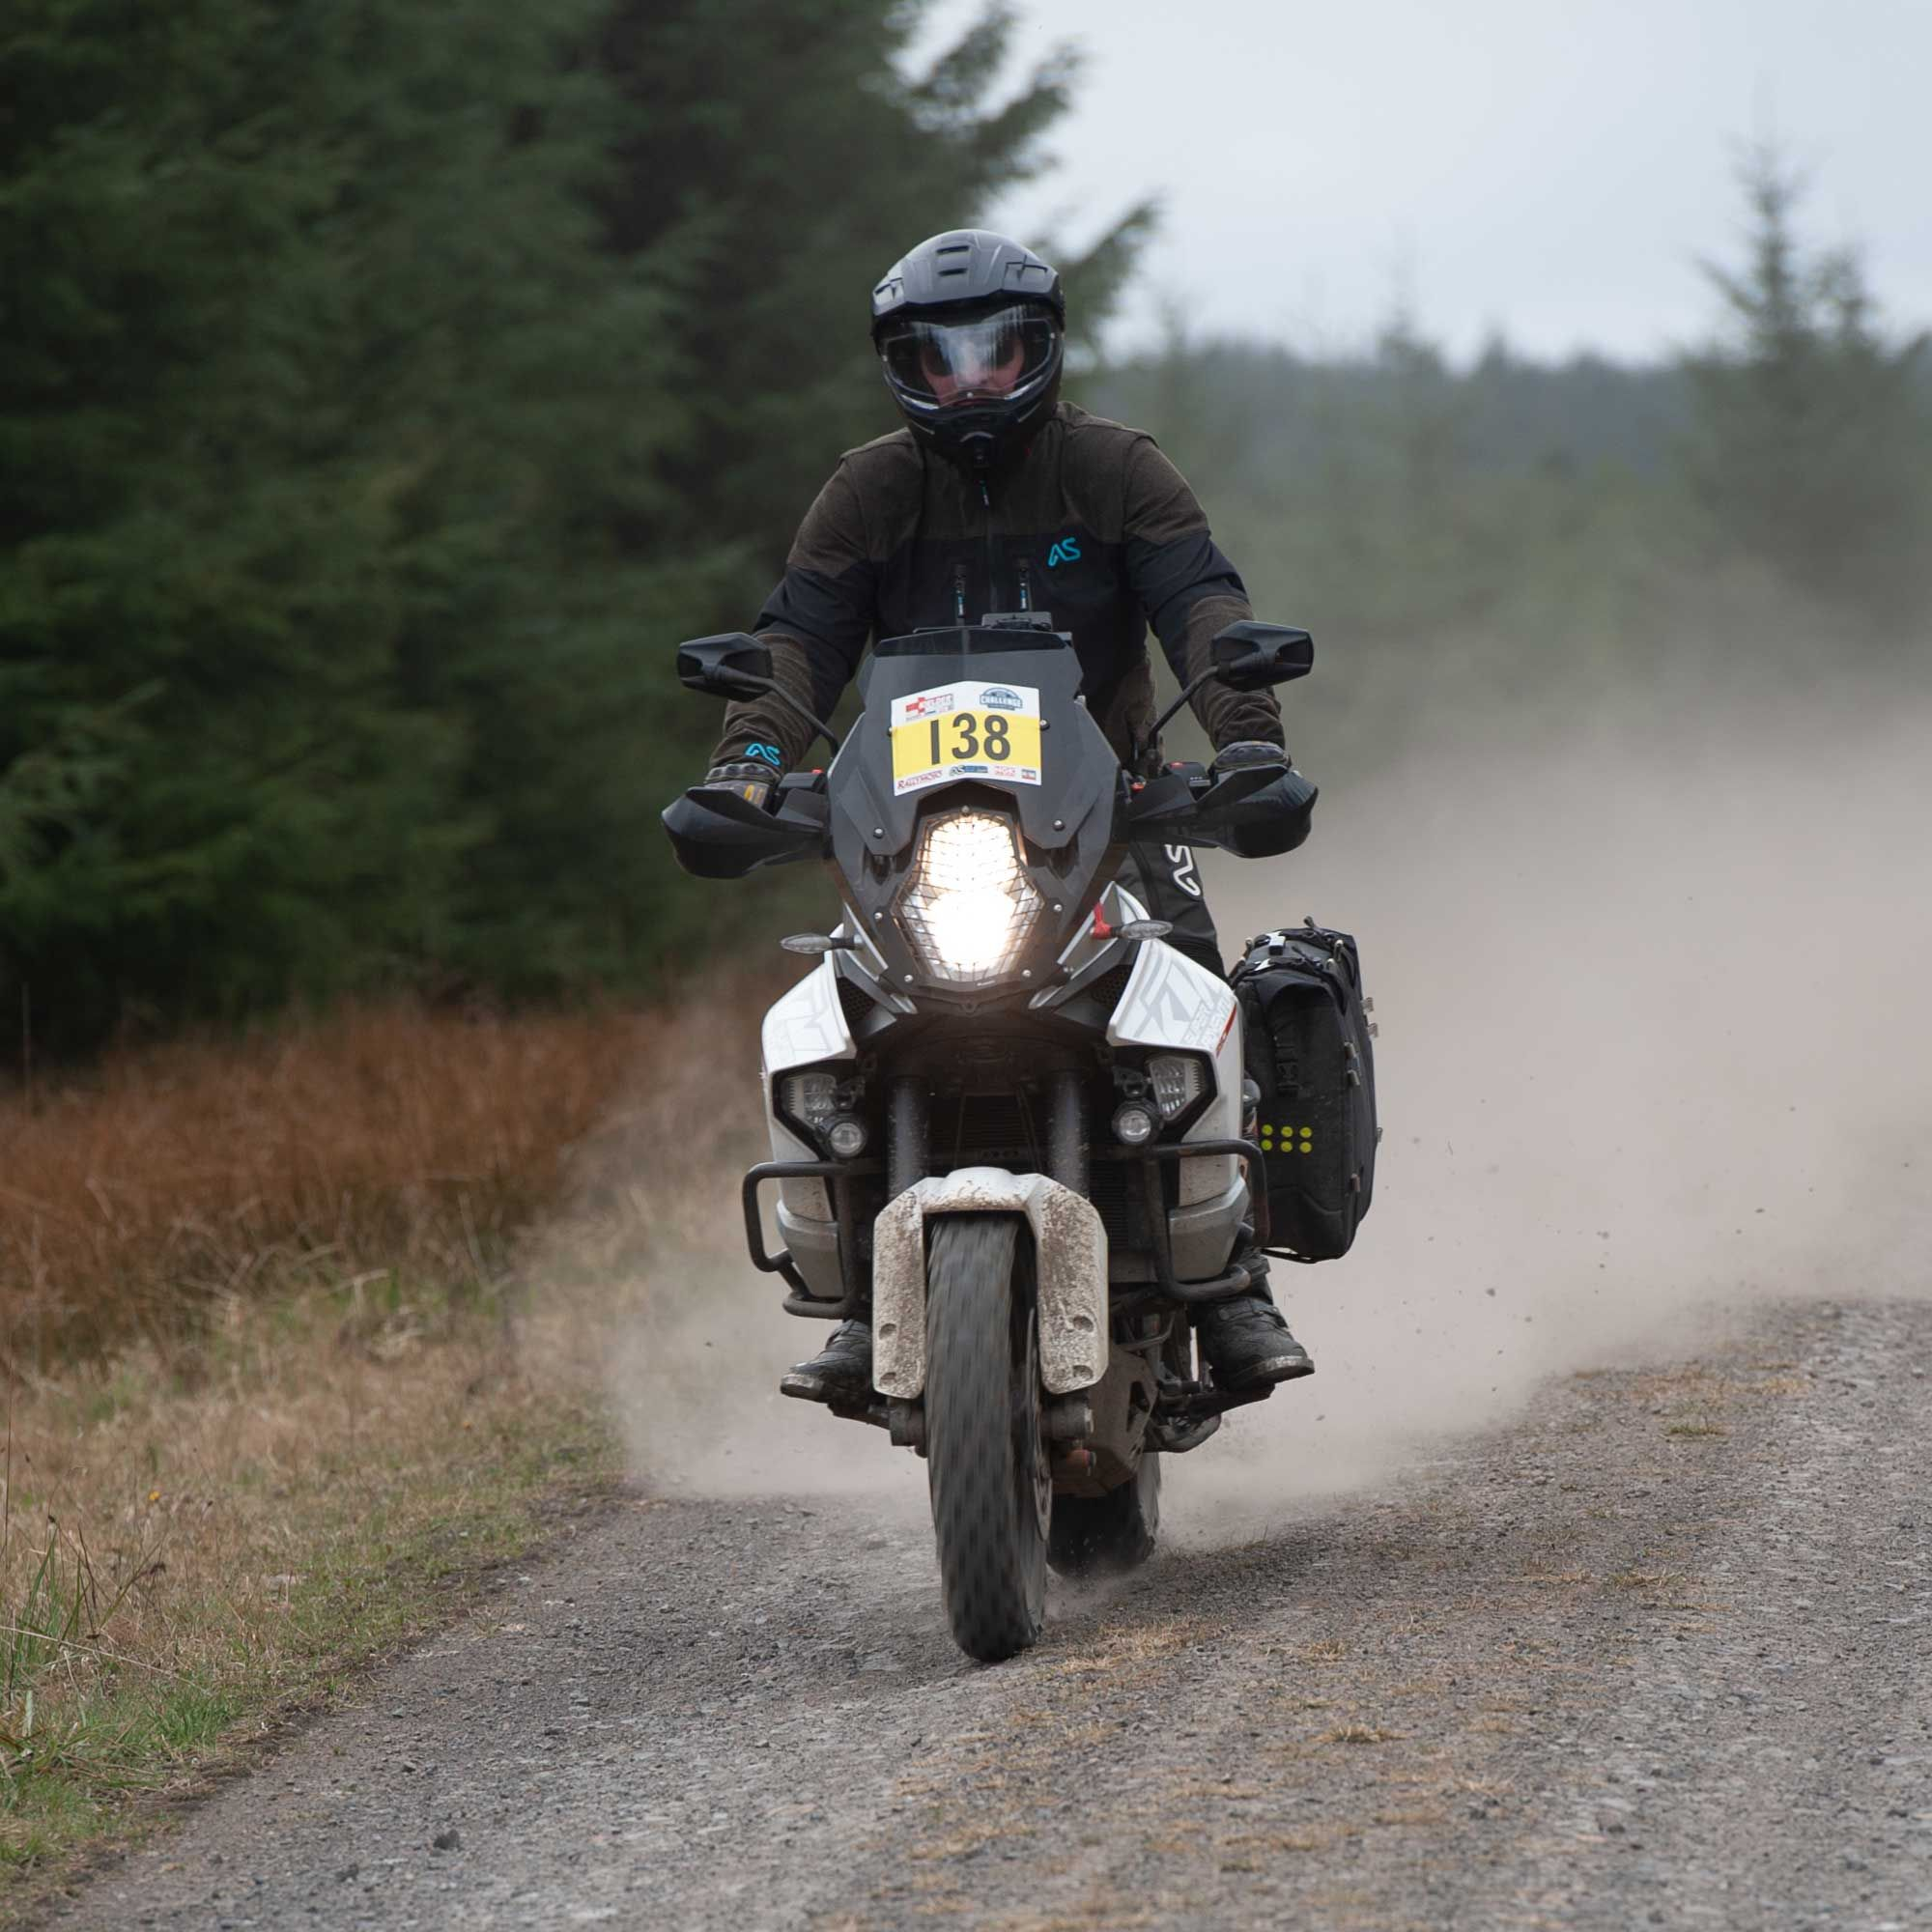 BMW GS riding gravel road